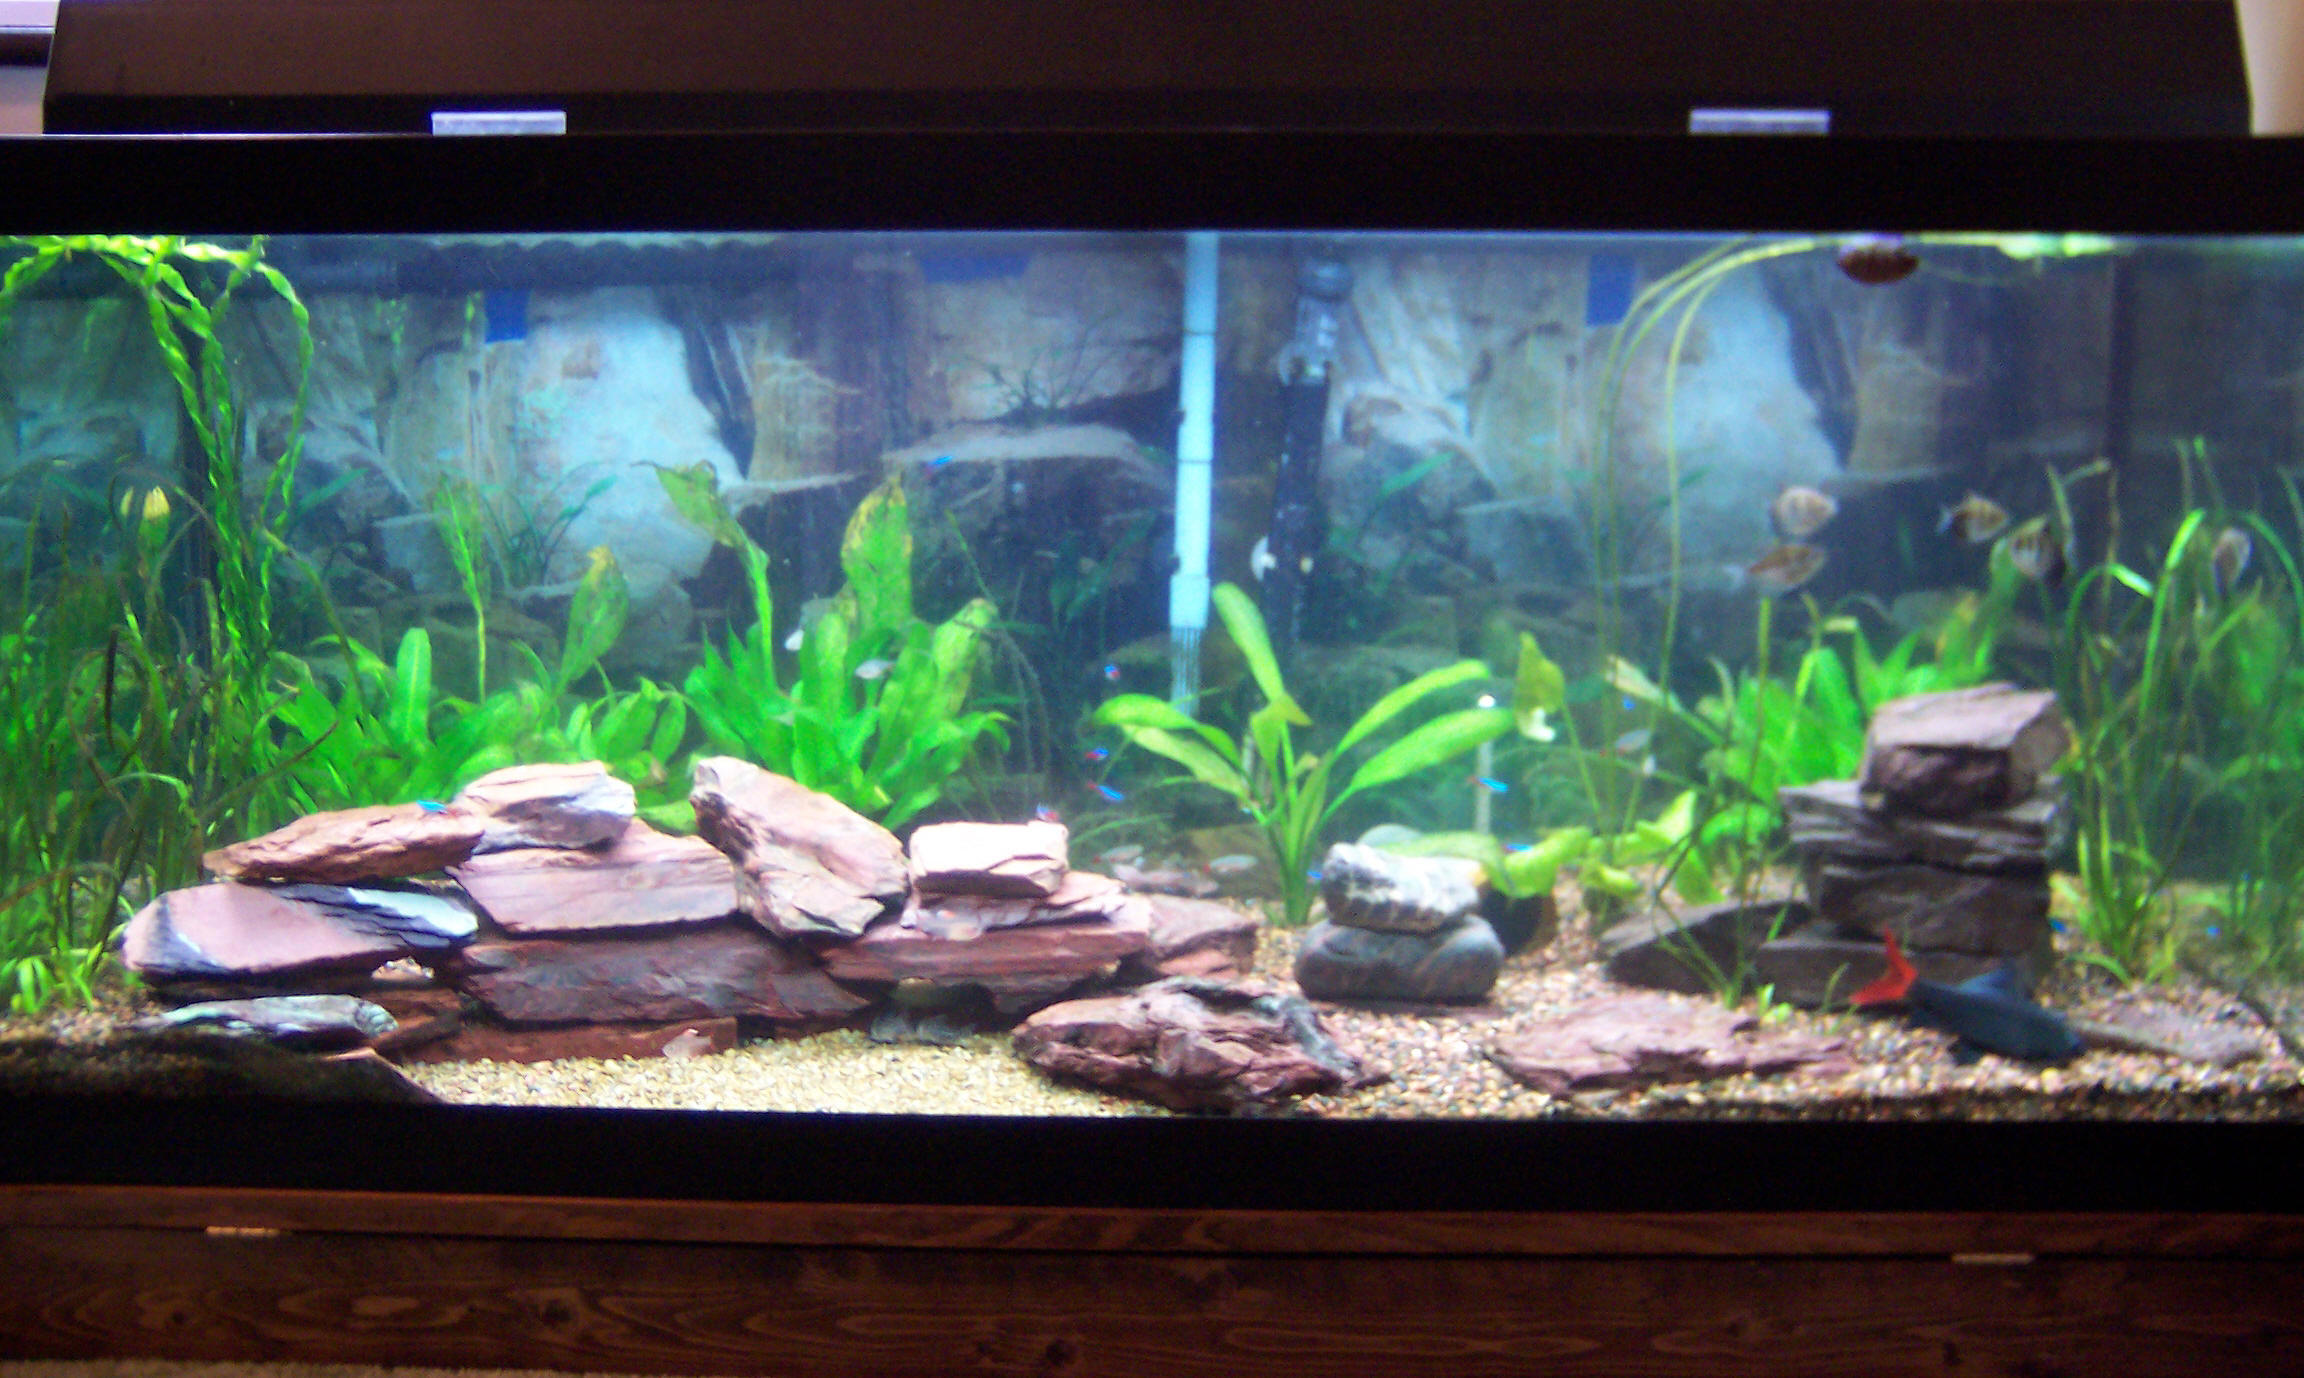 Pin Cylinder Fish Tanks Aquariums on Pinterest